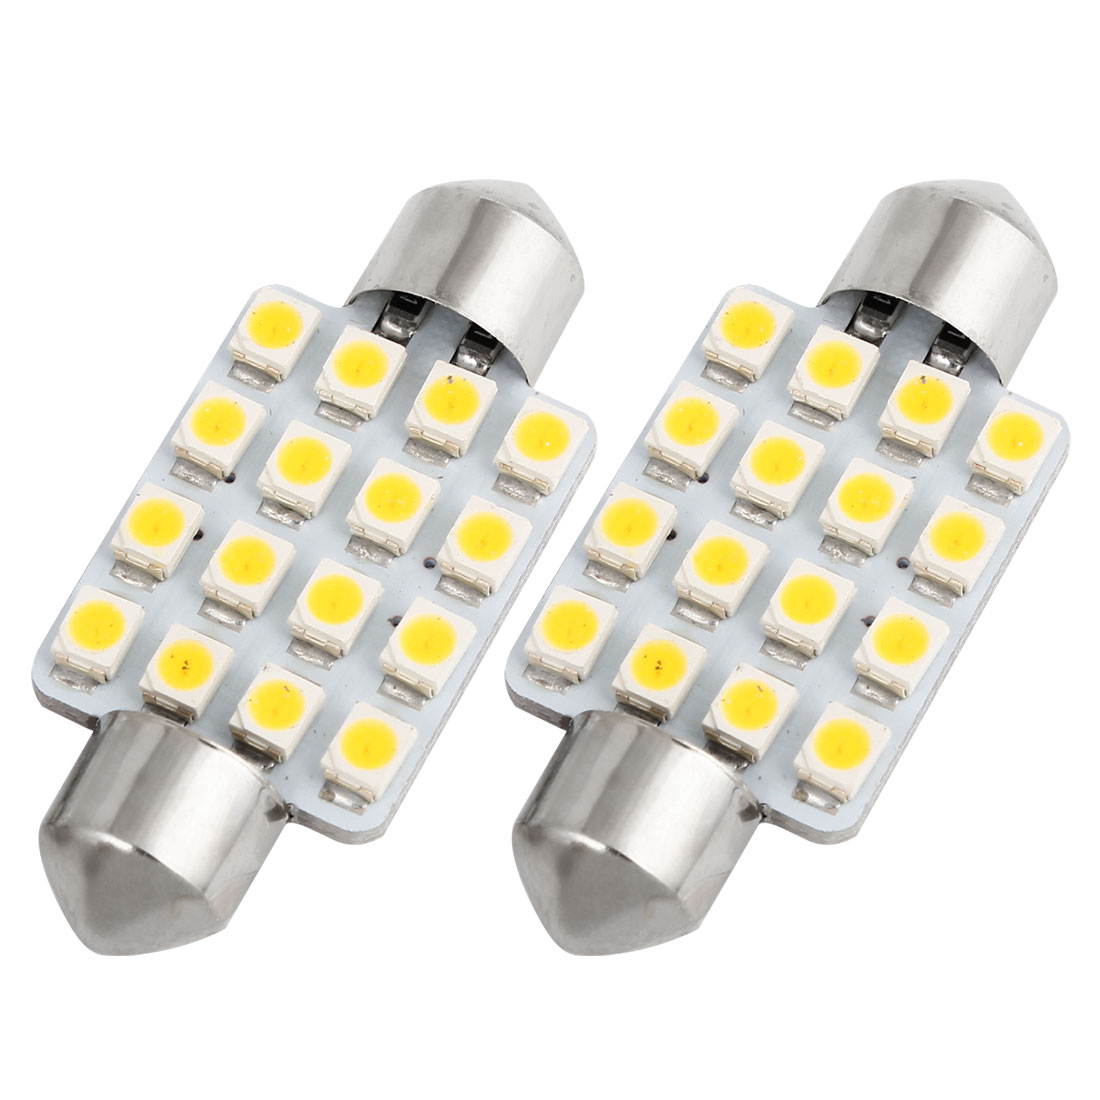 2PCS 1210 LED 16-SMD 39mm Warm White Festoon Dome Light 6423 6461 6418 Internal